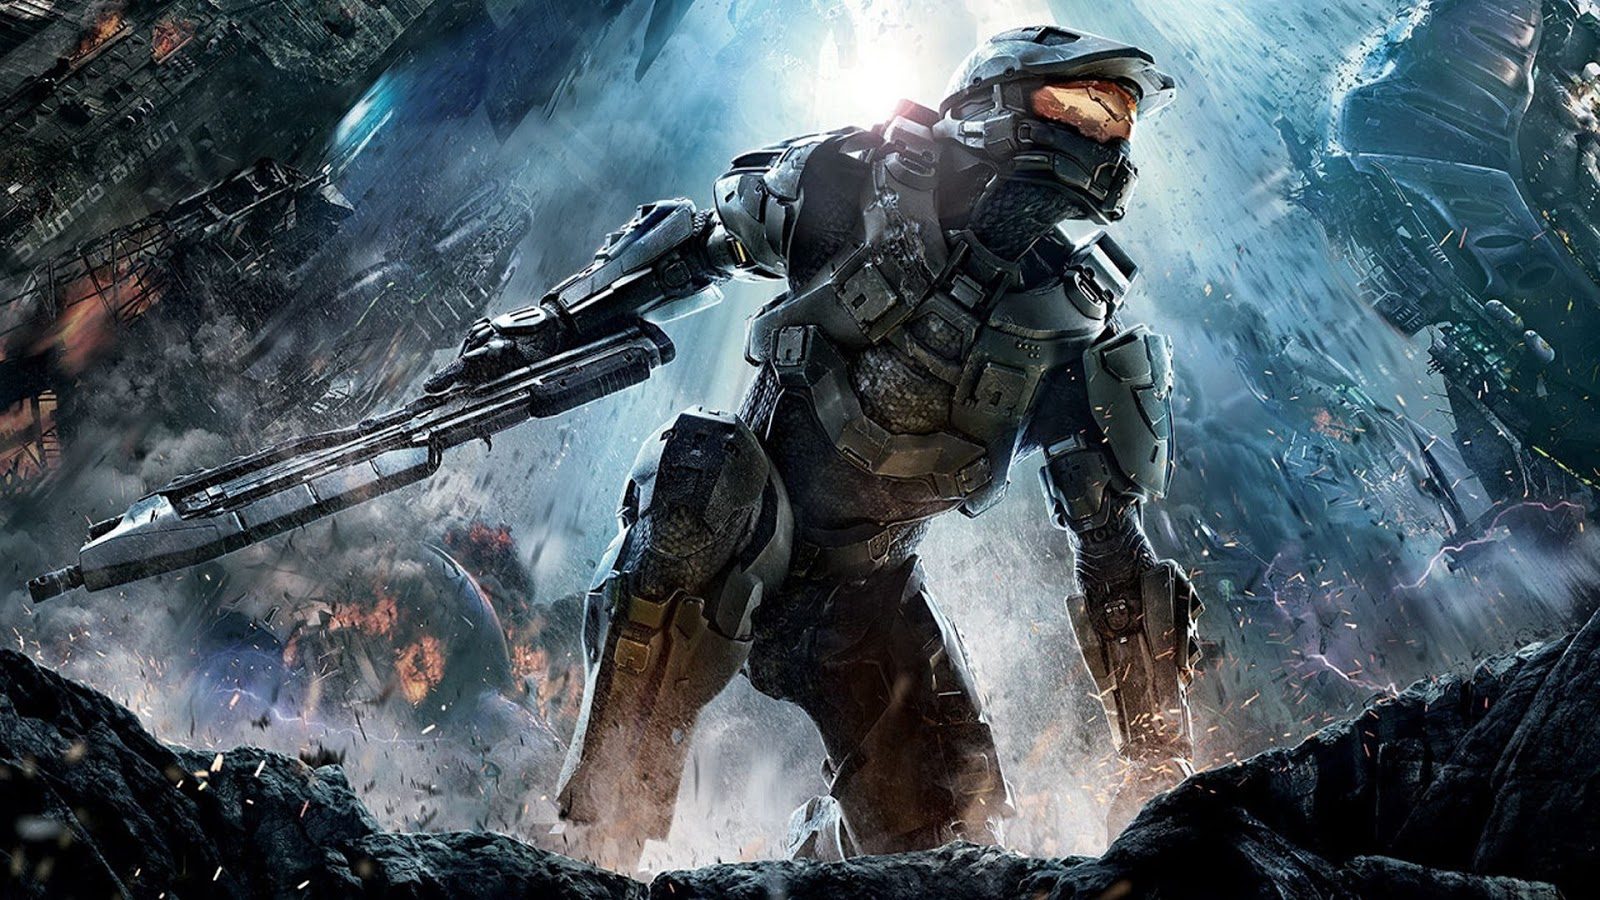 Halo Spartan Assault now available for Windows 8 devices available 1600x900